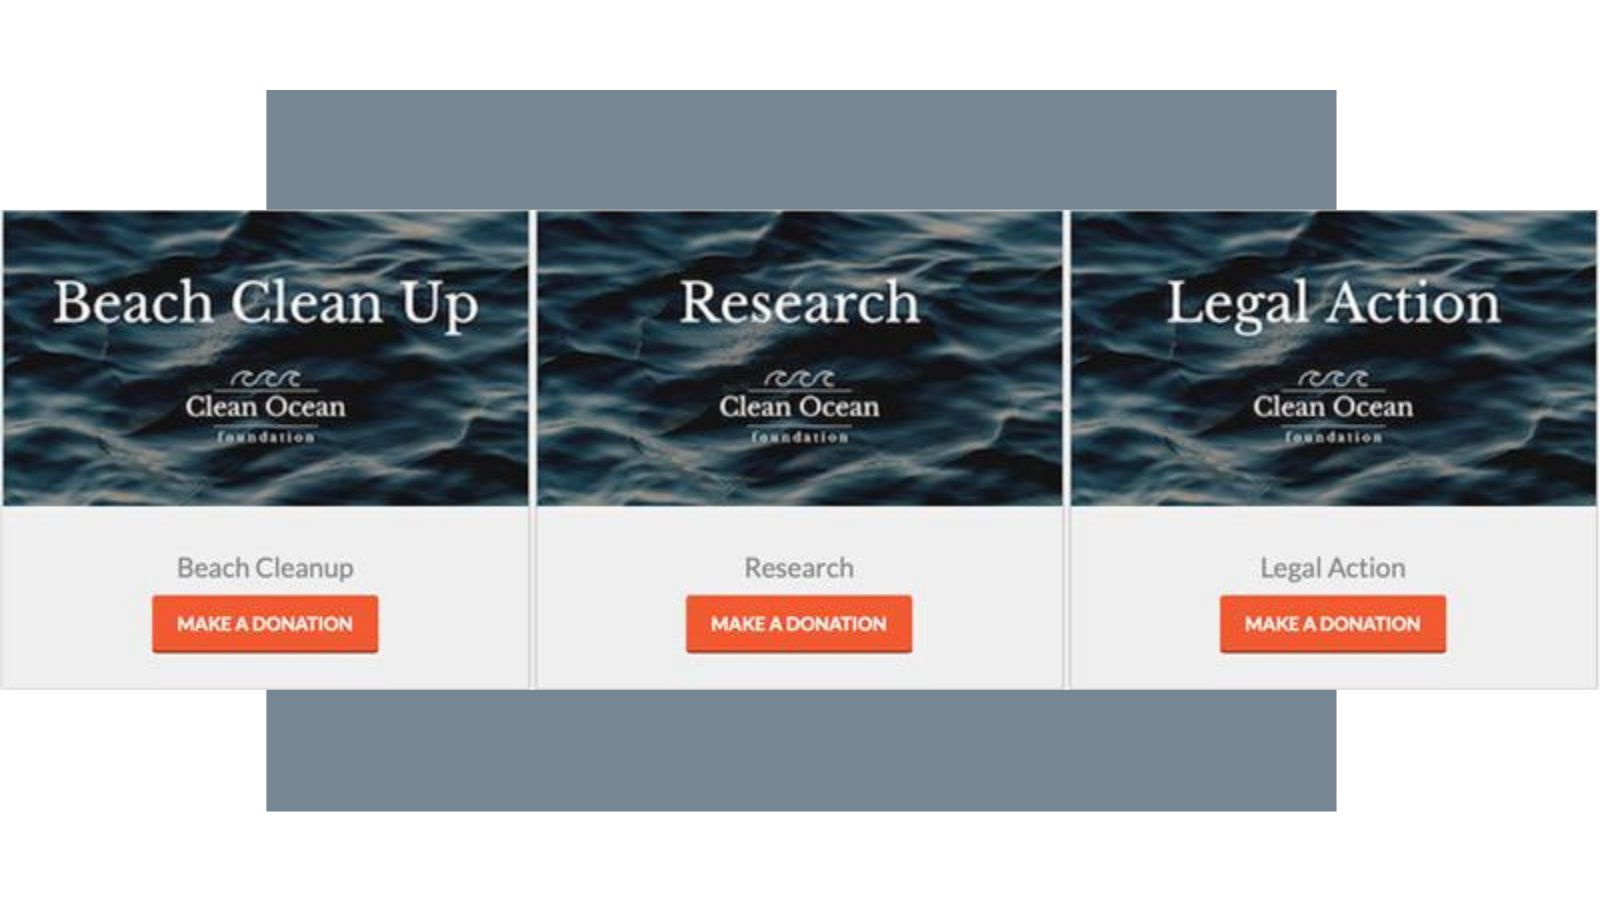 Give each fundraising initiative its own campaign page